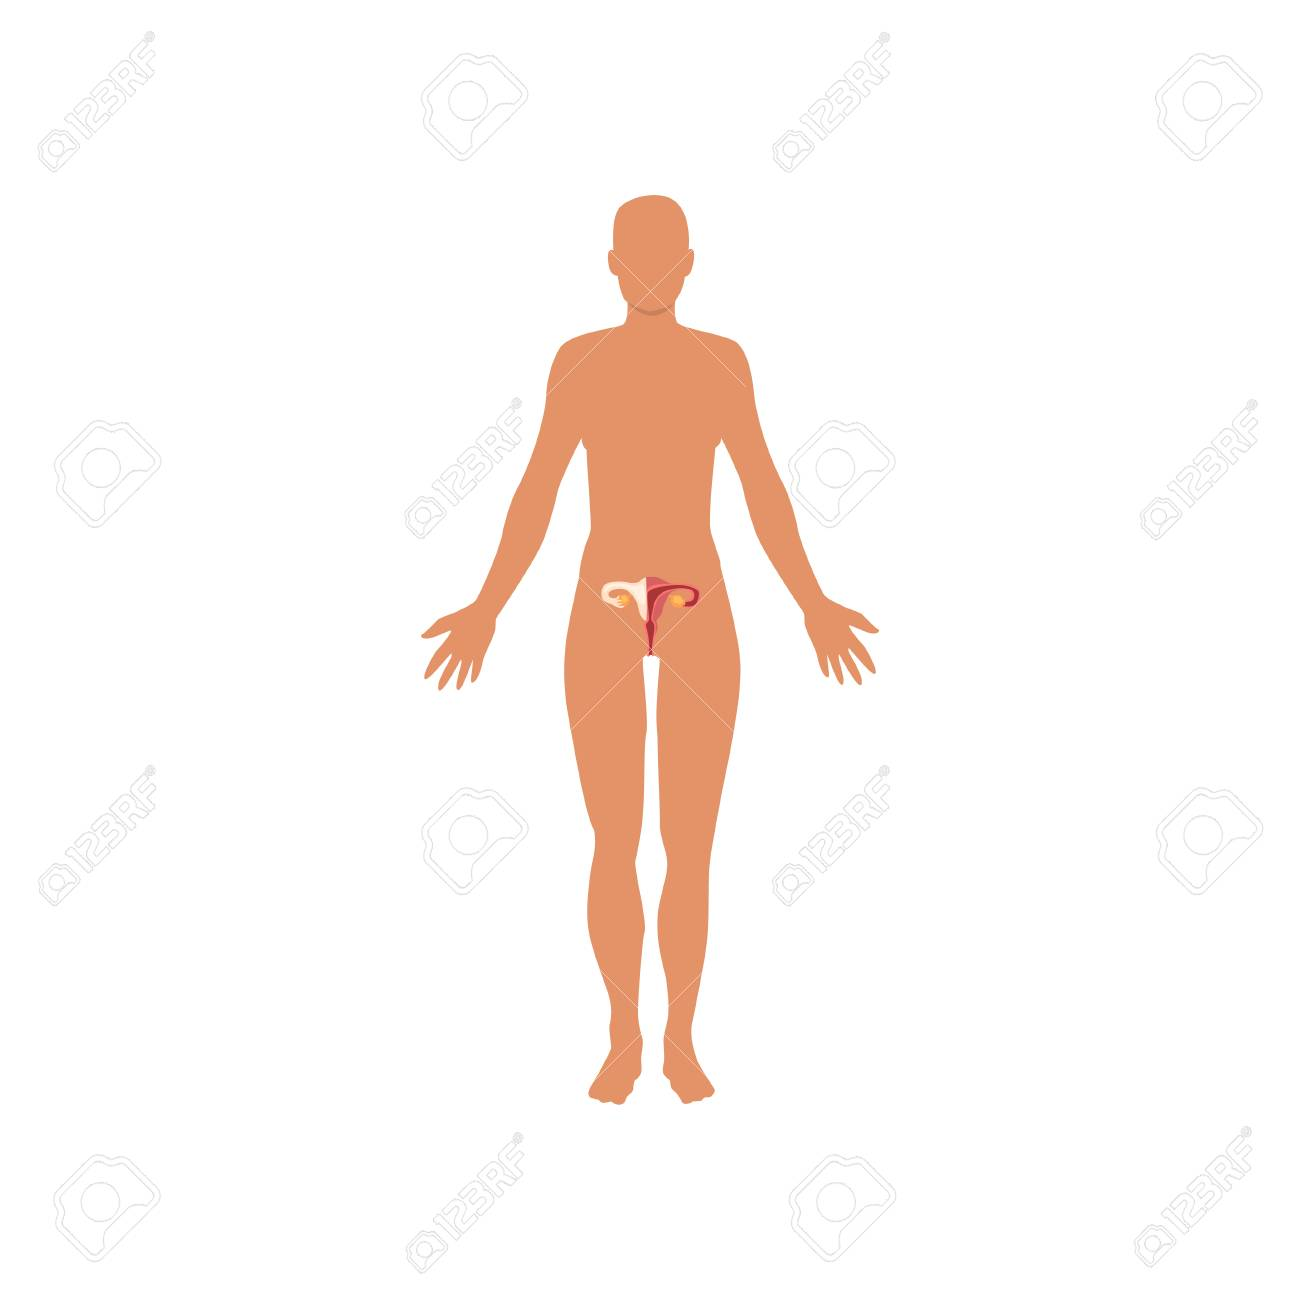 female sexual system anatomy of human body vector illustration royalty free cliparts vectors and stock illustration image 104332923 female sexual system anatomy of human body vector illustration